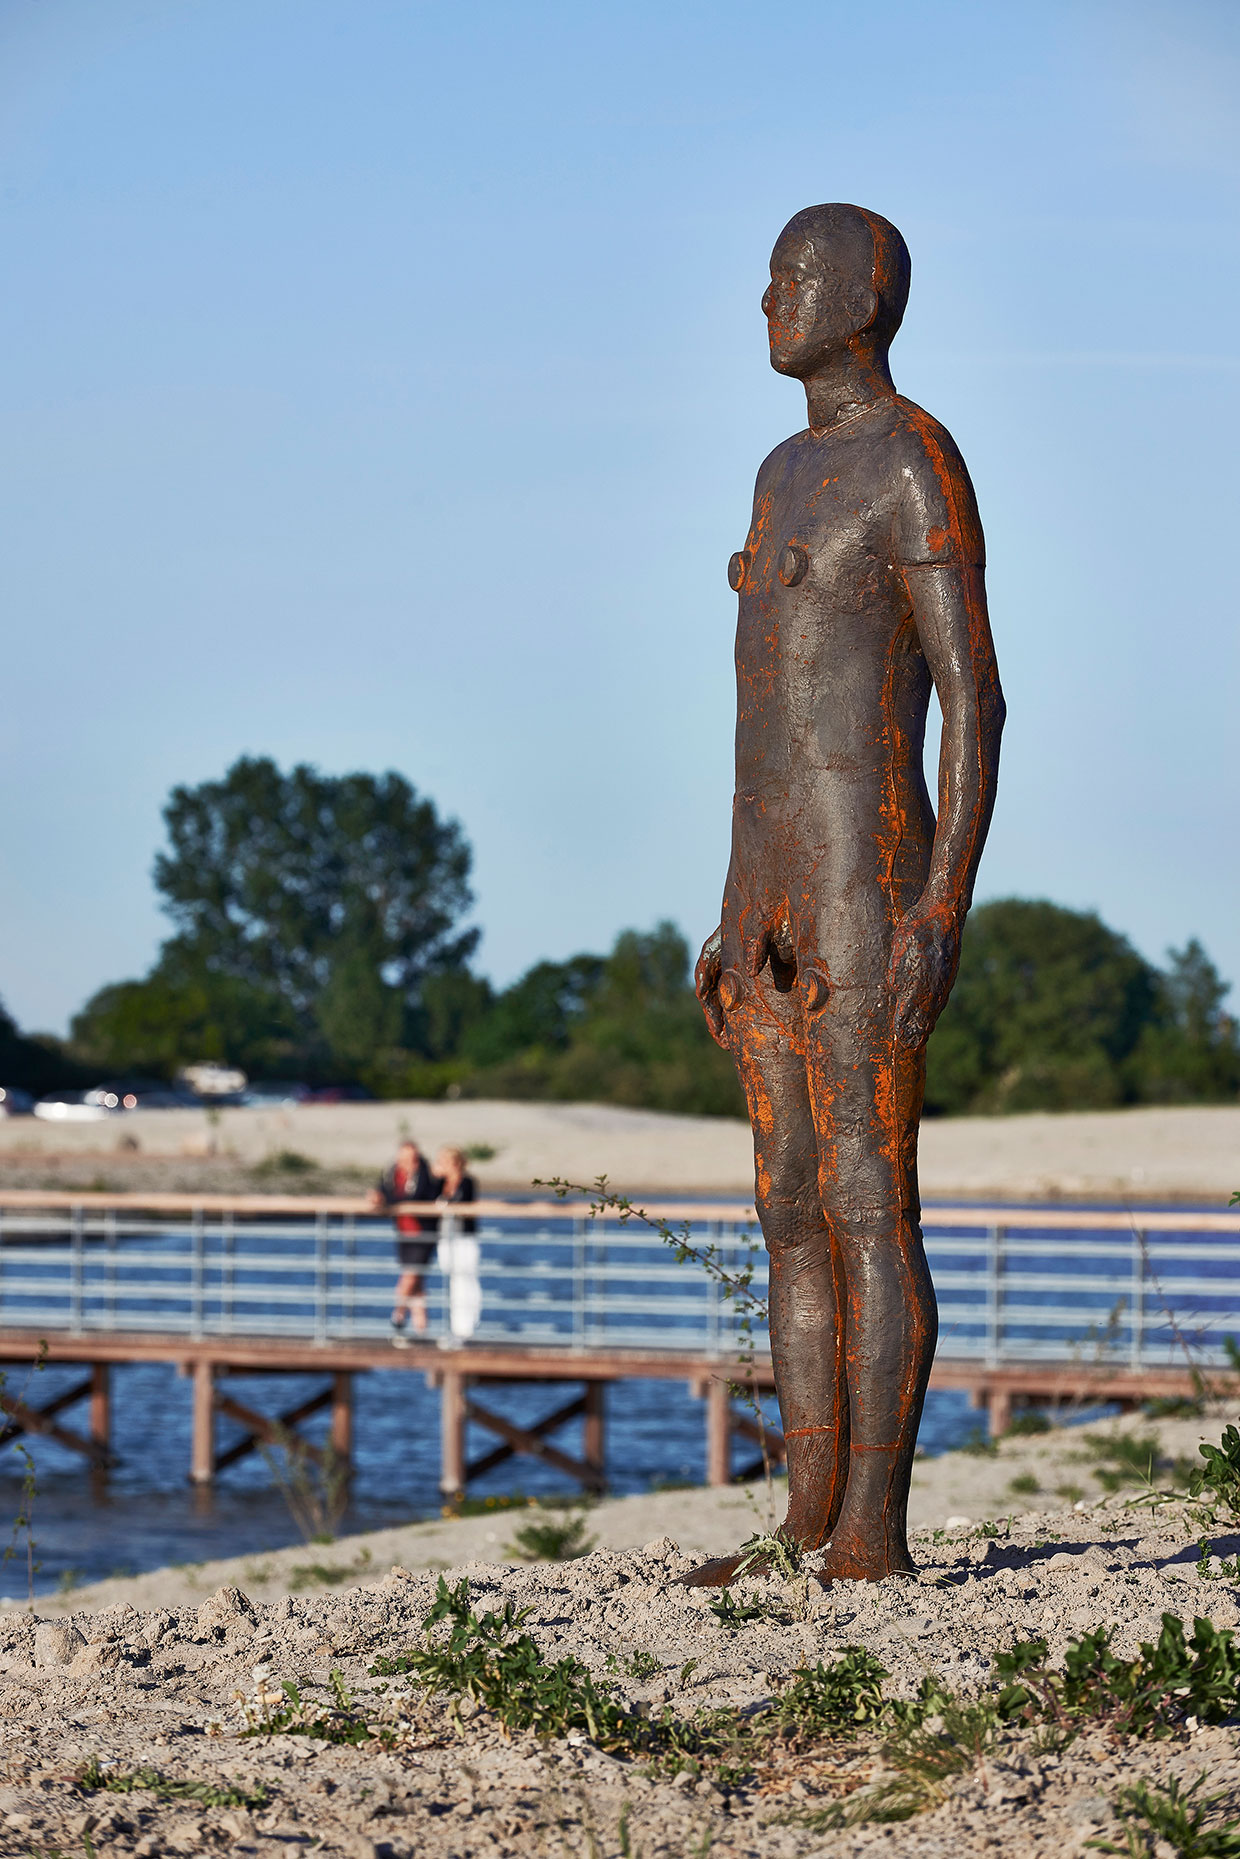 Antony Gormley, Another Time V, 2007. ARKENs samling. Foto: Torben Petersen